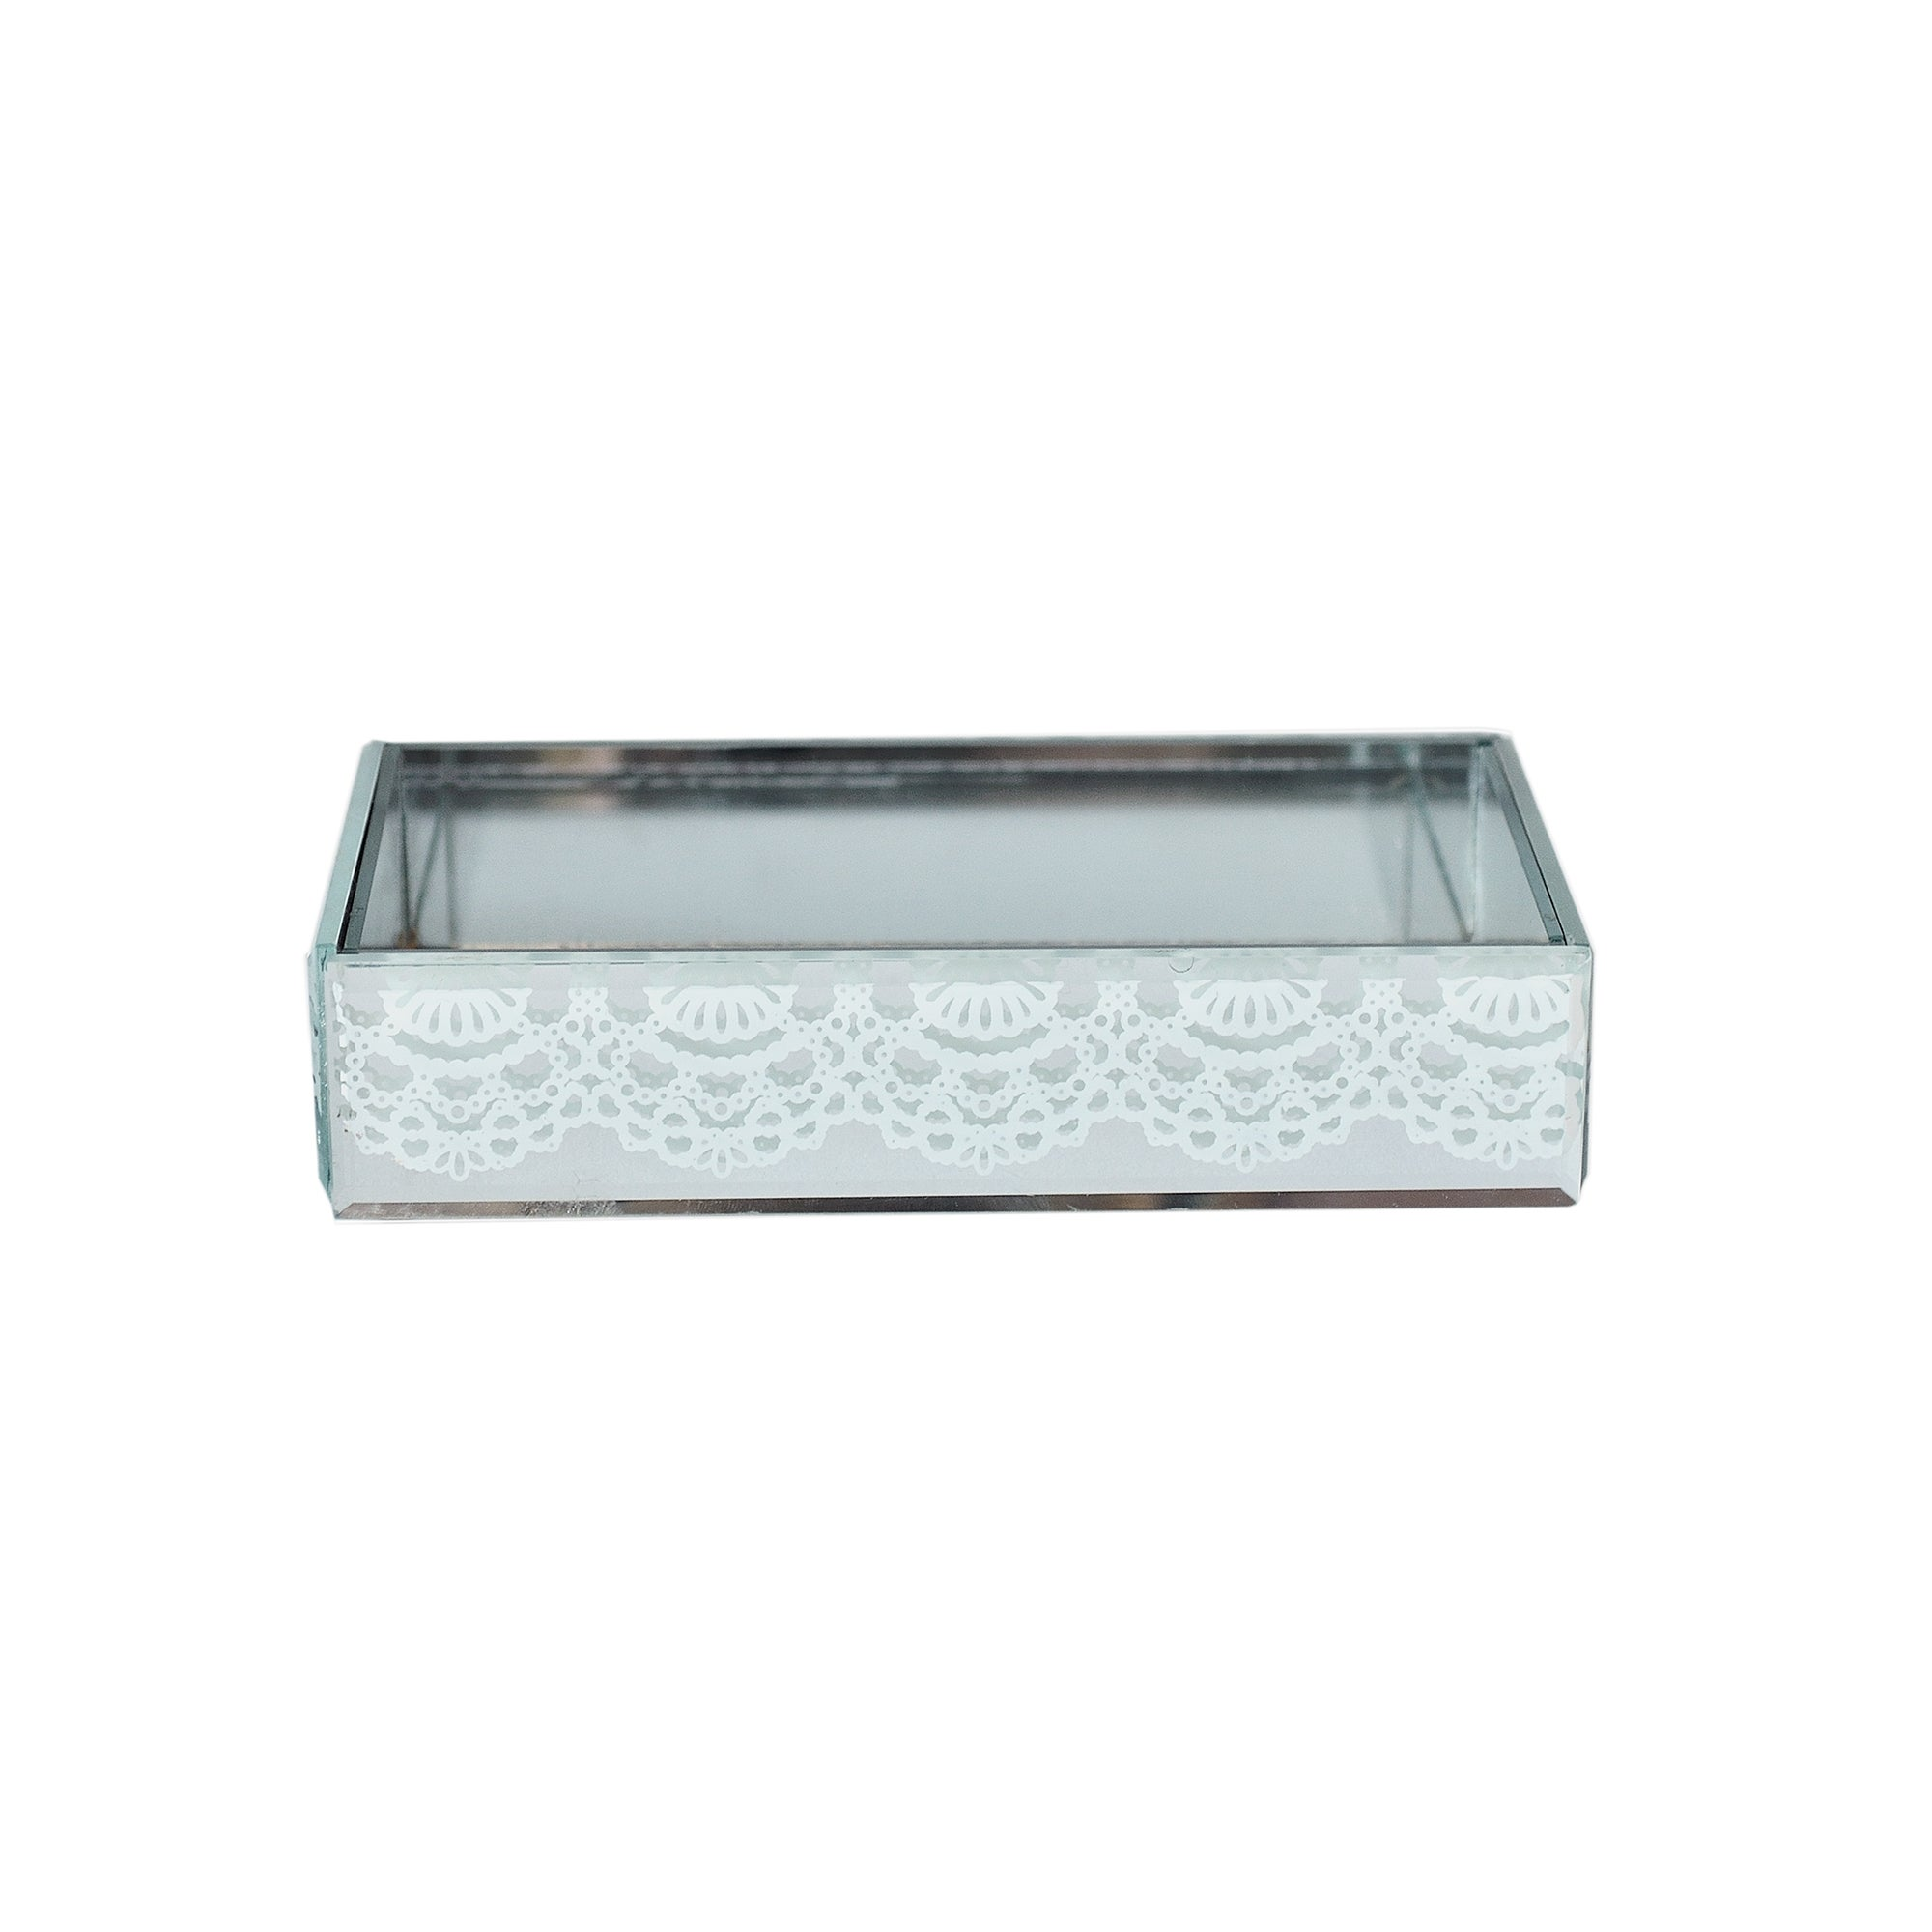 Venetian Mirror White Lace Collection Soap Dish